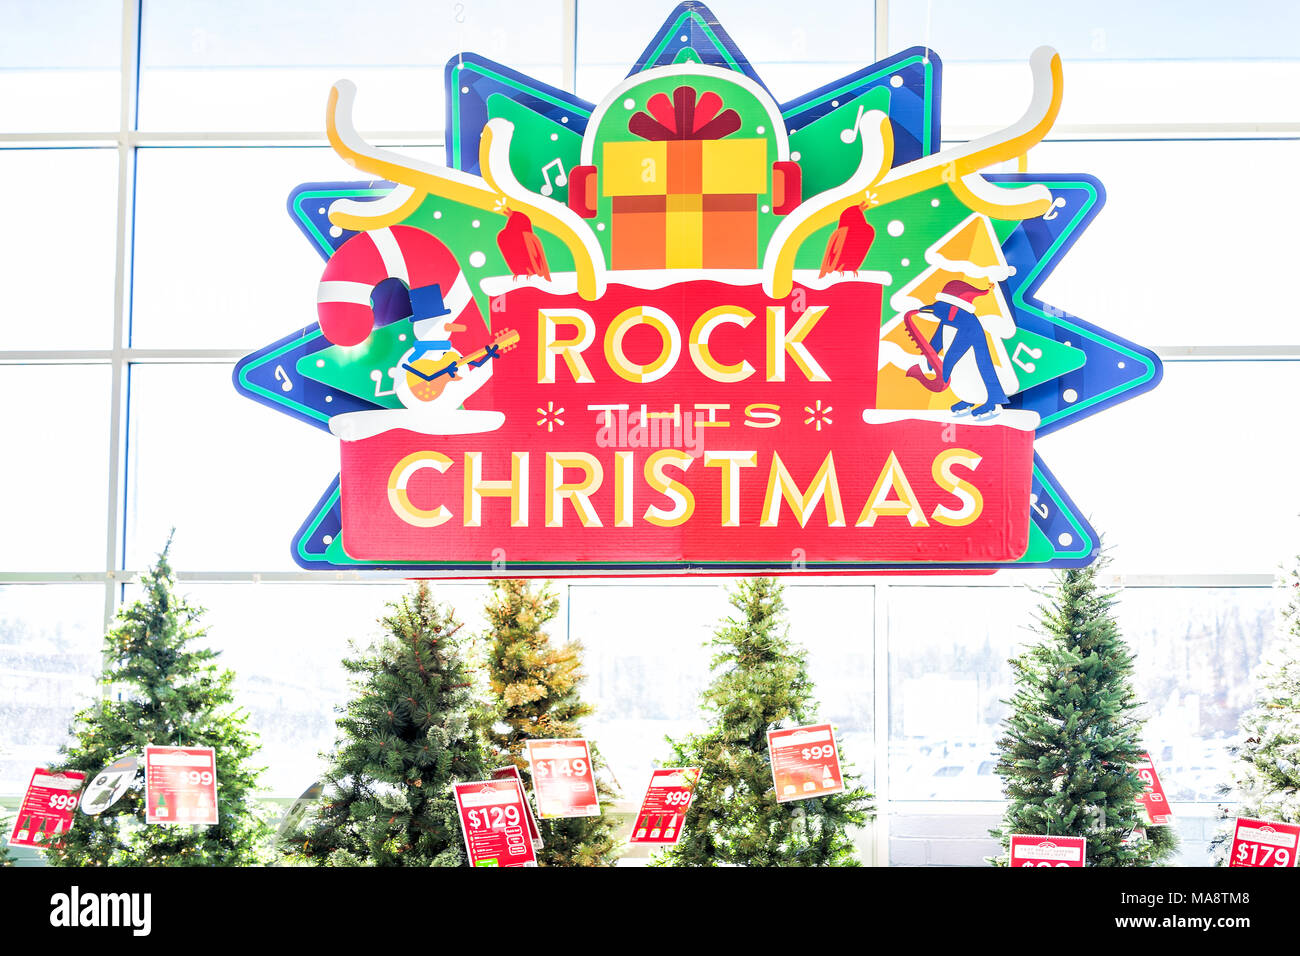 burke usa november 24 2017 rock this christmas tree display in walmart store entrance with prices sale of ornament holiday celebration in virgin